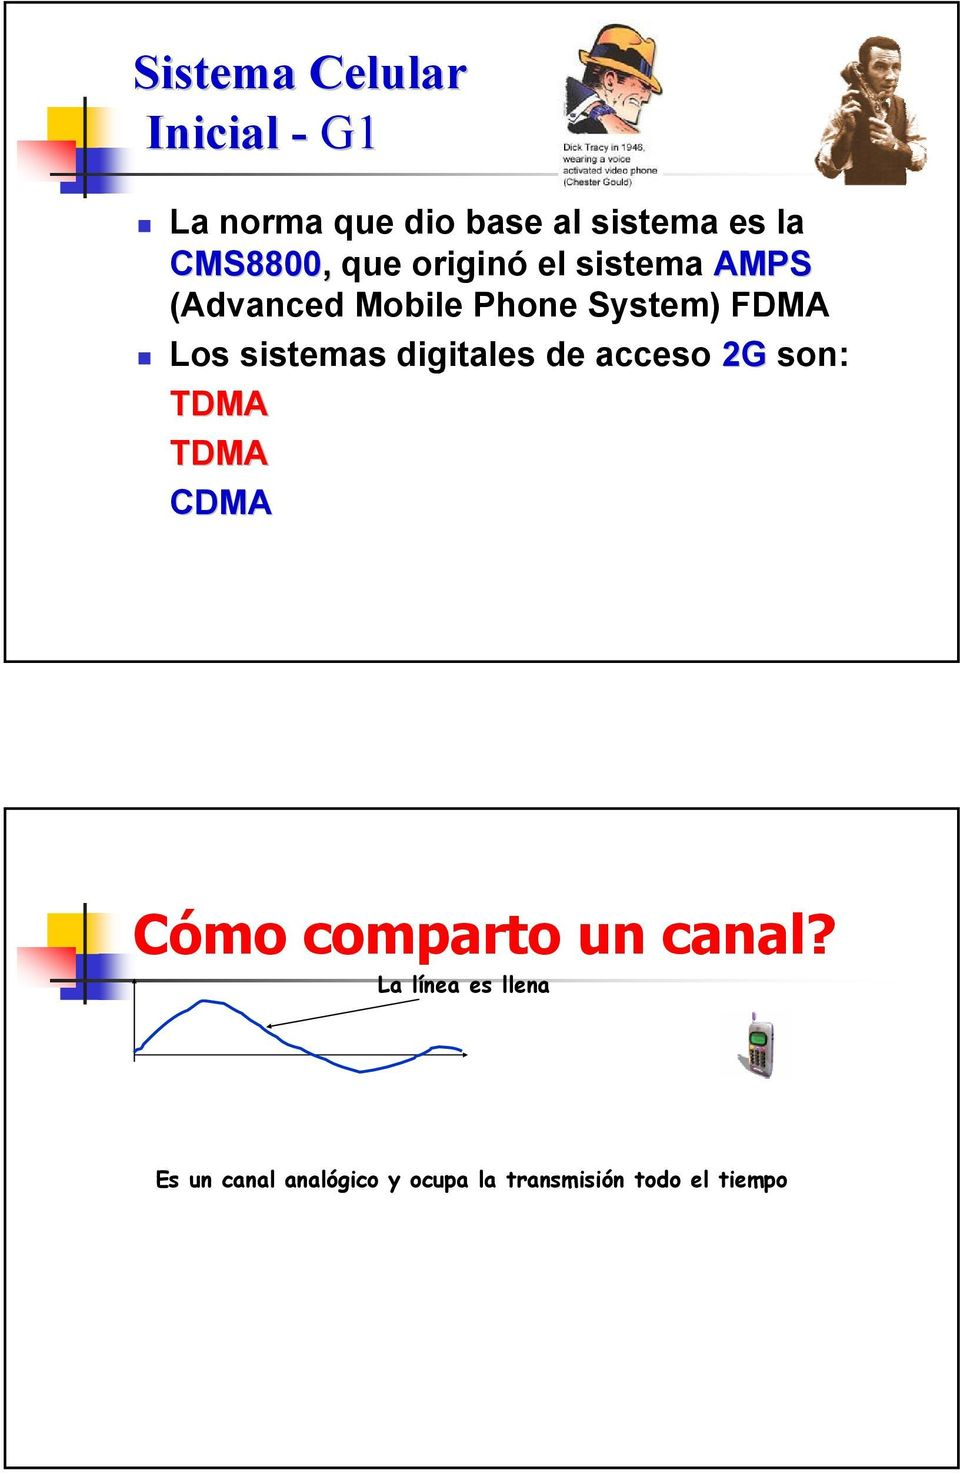 D-AMPSD (Time Division Mpx Acc) TDMA GSM (Global System Mobile) CDMA IS-95 (Code Division Mpx